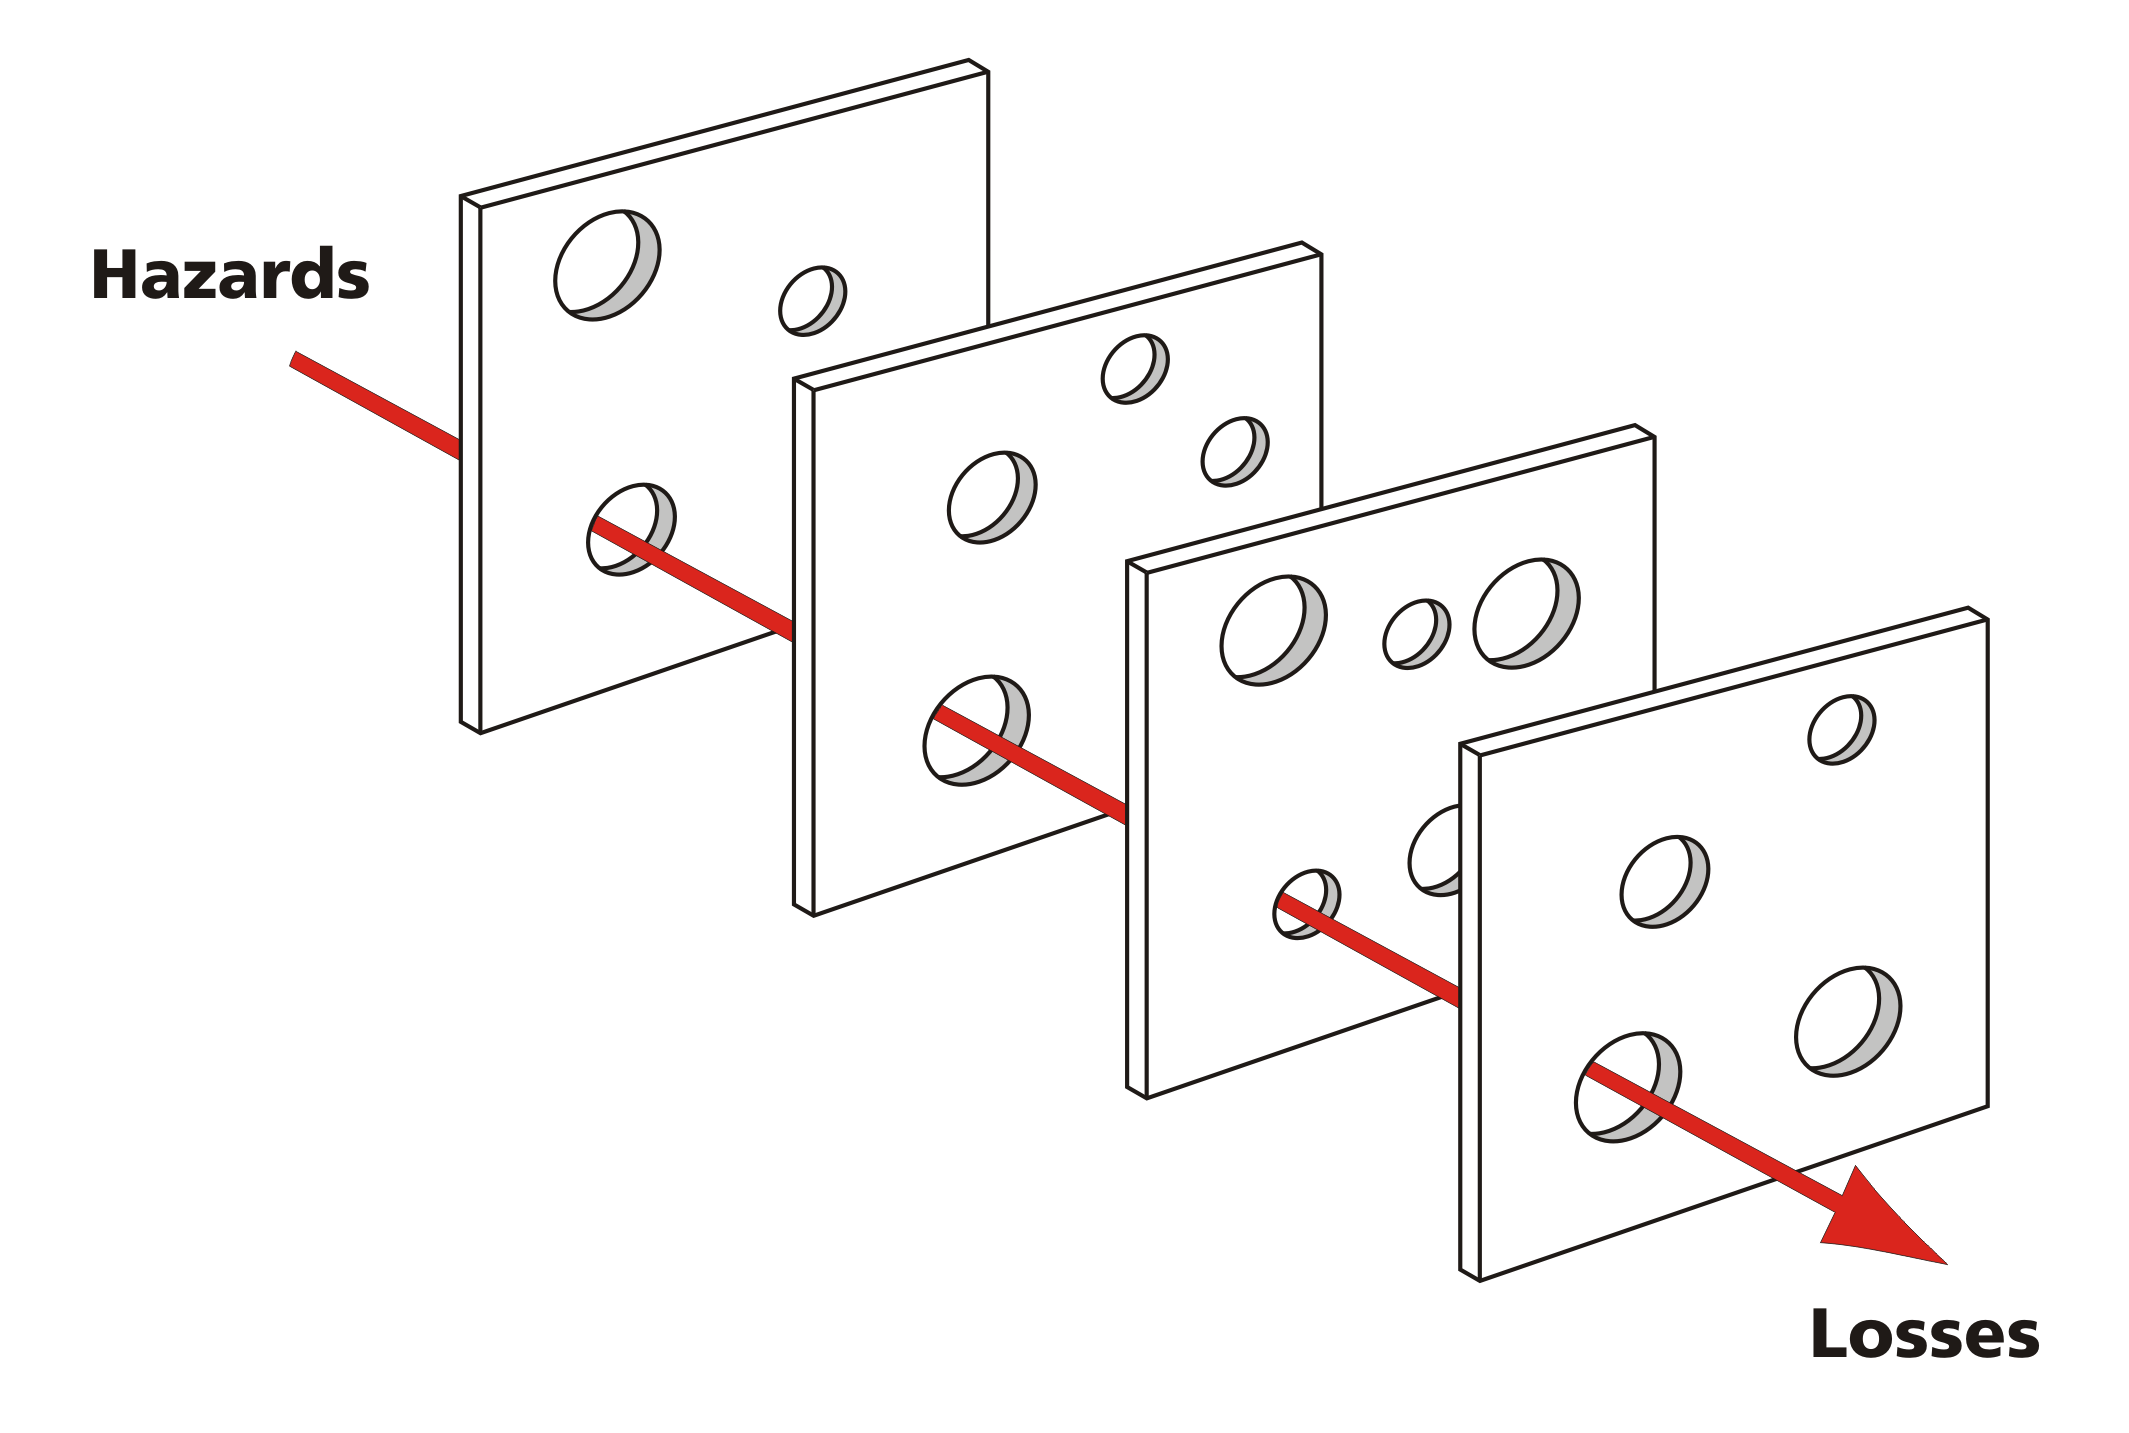 The Swiss Cheese Model for safety showing how several layers of accident prevention line up before an incident occurs. It can and does happen.